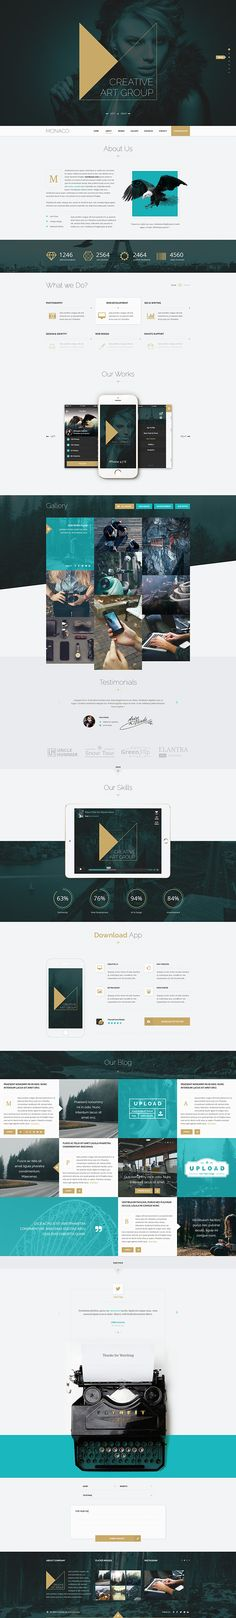 Monaco - Creative Bootstrap 3 PSD Template on Behance Design Sites, Web Design Examples, Creative Web Design, Site Design, Mobile Web Design, Web Ui Design, Interface Design, Web Layout, Layout Design